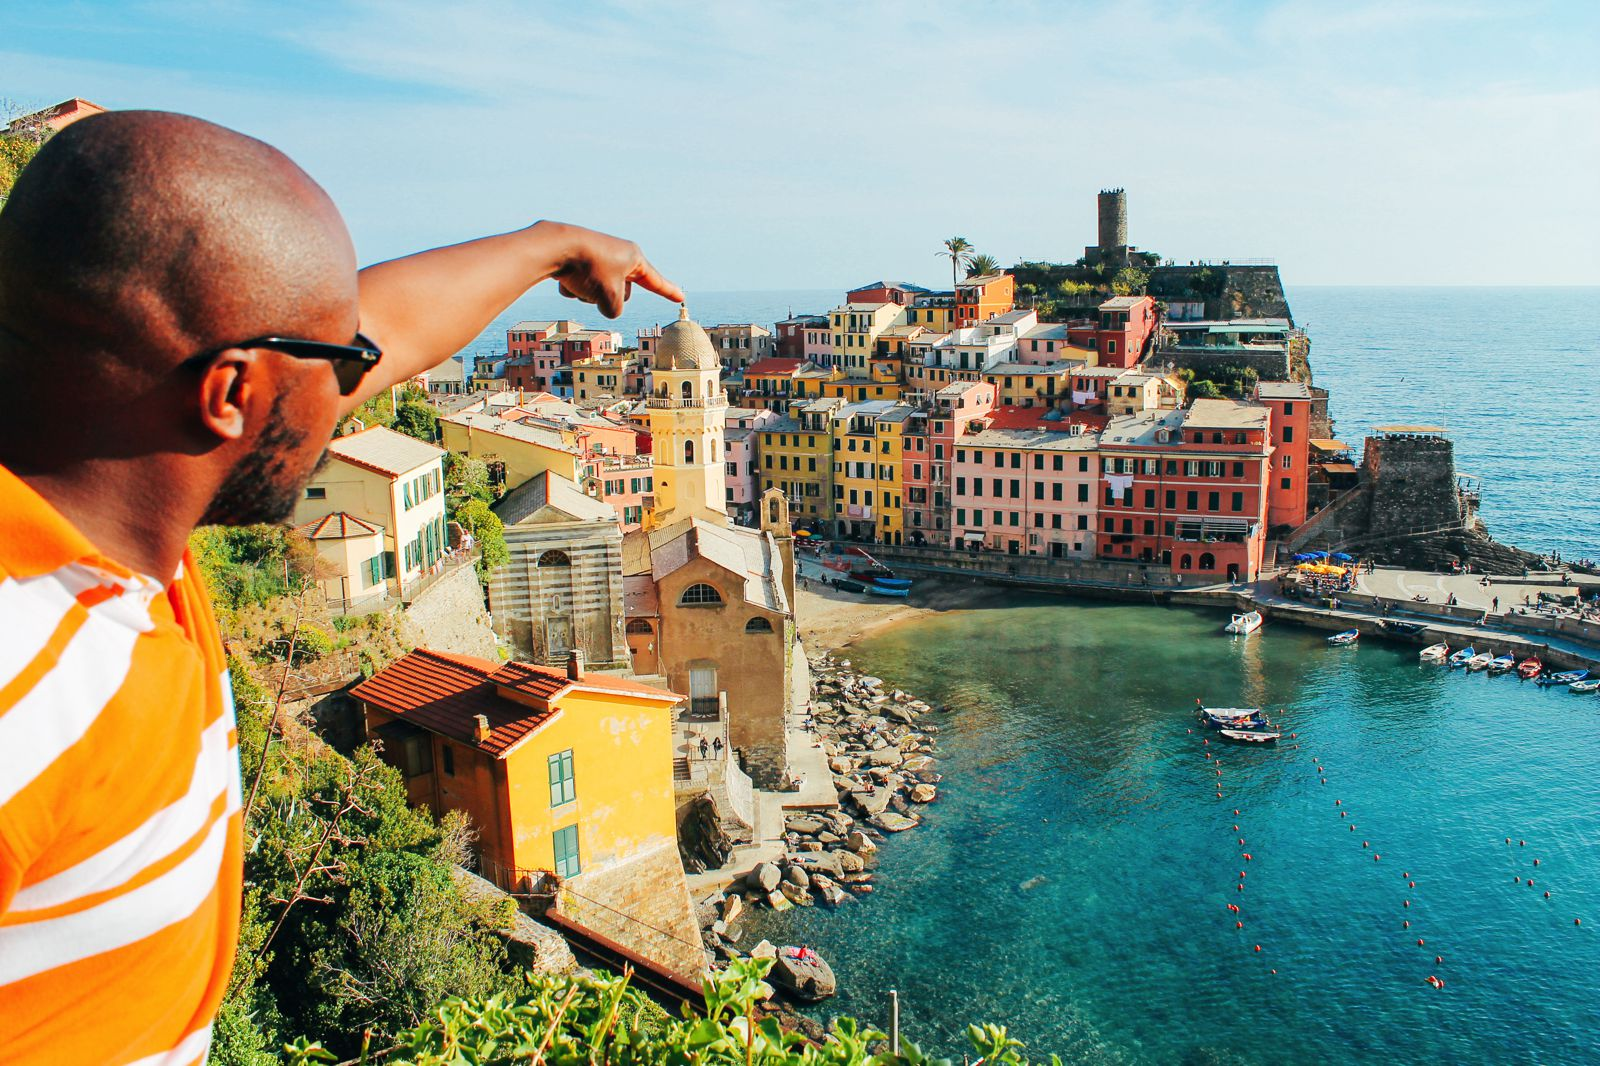 Vernazza in Cinque Terre, Italy - The Photo Diary! [4 of 5] (9)